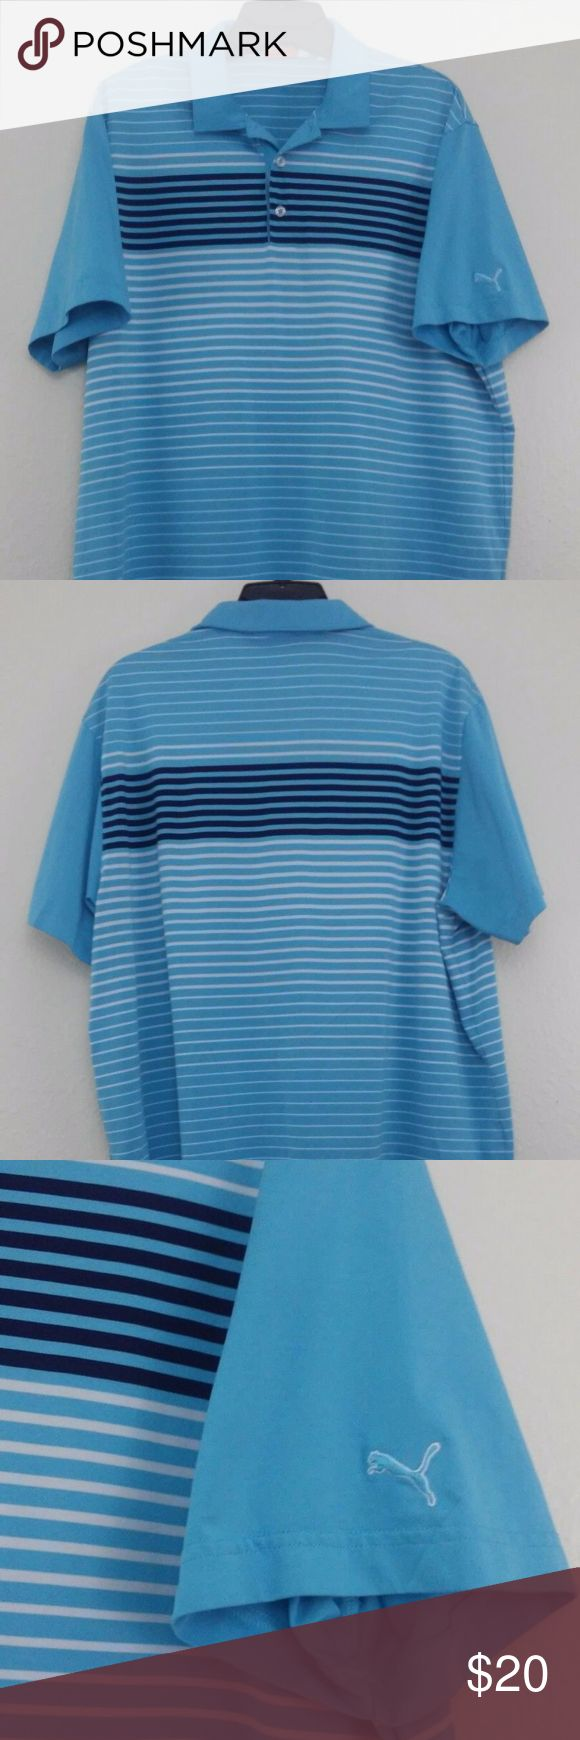 """PUMA SPORT LIFESTYLE COLLECTION-Golf-Polo Sz XL PUMA SPORT LIFESTYLE COLLECTION Golf Polo Shirt  Style Wicking Dry Cell  Size XL  PUMA Lifestyle Dry Cell Mens Golf Polo Shirt  Mens Size XL  PRO SERIES ATHLETIC FIT  Light Blue with Black /White Stripes  NEW WITHOUT TAGS  We have a bunch of NEW WITHOUT TAGS POLO SHIRTS WE WILL BE LISTING   Approximate Measurements Flat Lay  UNDERARM TO UNDERARM 23.5""""  Length from under black collar to bottom hem 29.5 """"   We do accept REASONABLE offers Puma…"""